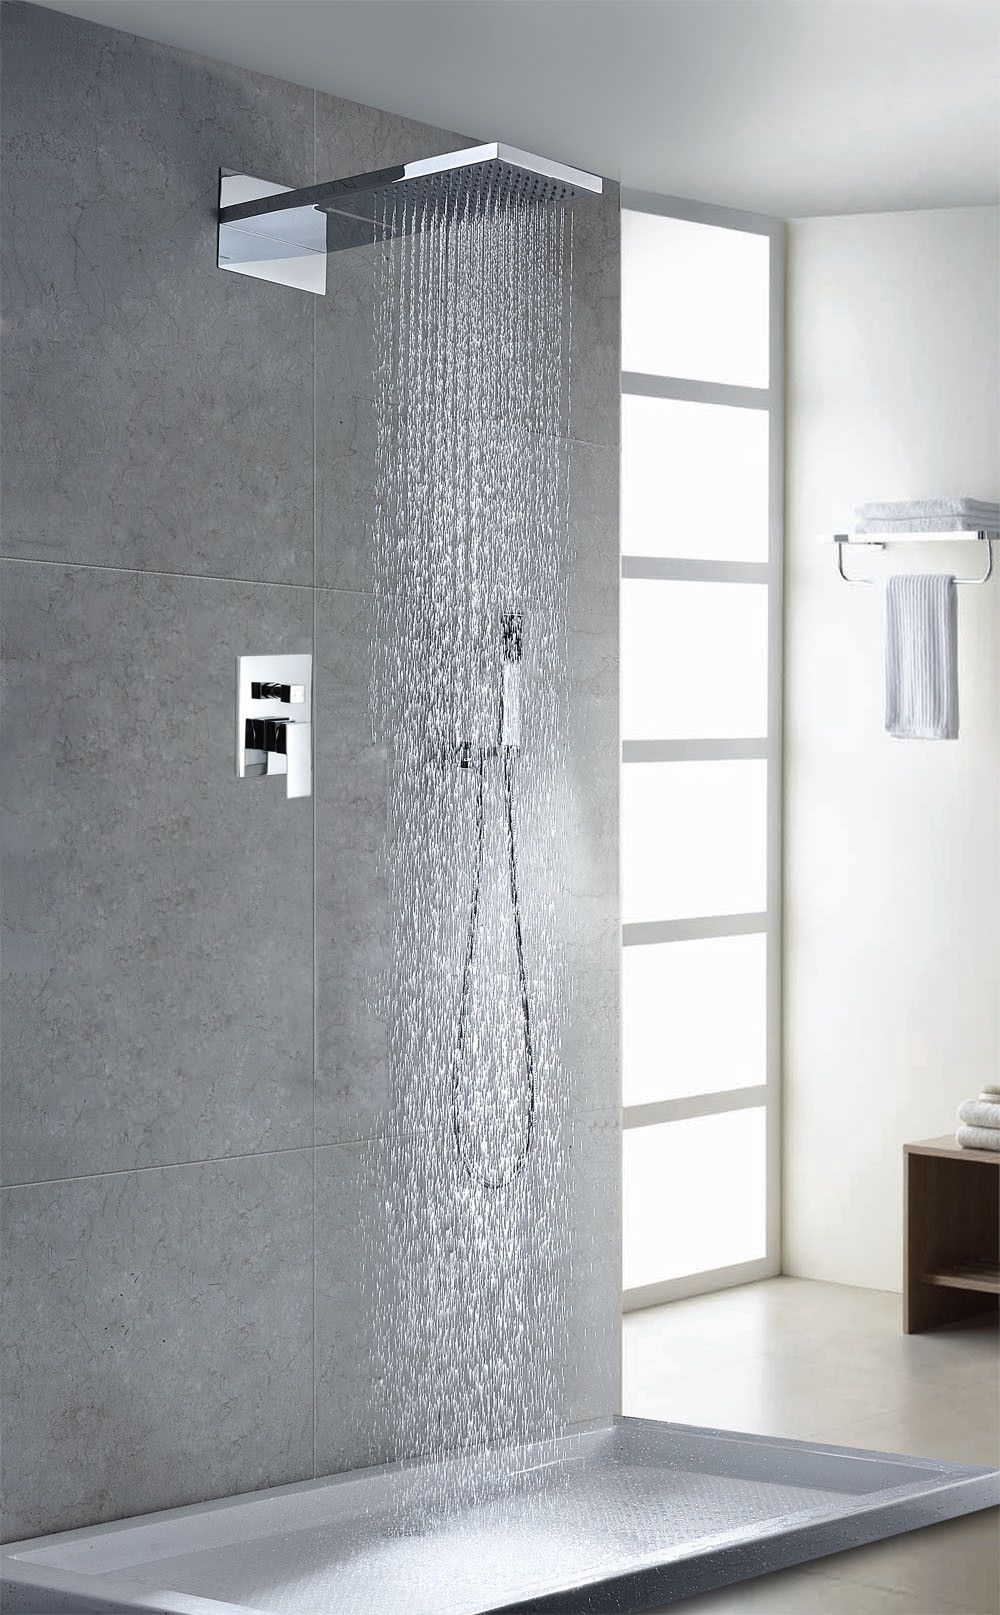 Unique Waterfall Style Elegant Touch Shower Faucet This Unique Shower Faucet Is Easy To Ins Contemporary Bathroom Designs Waterfall Shower Contemporary Shower